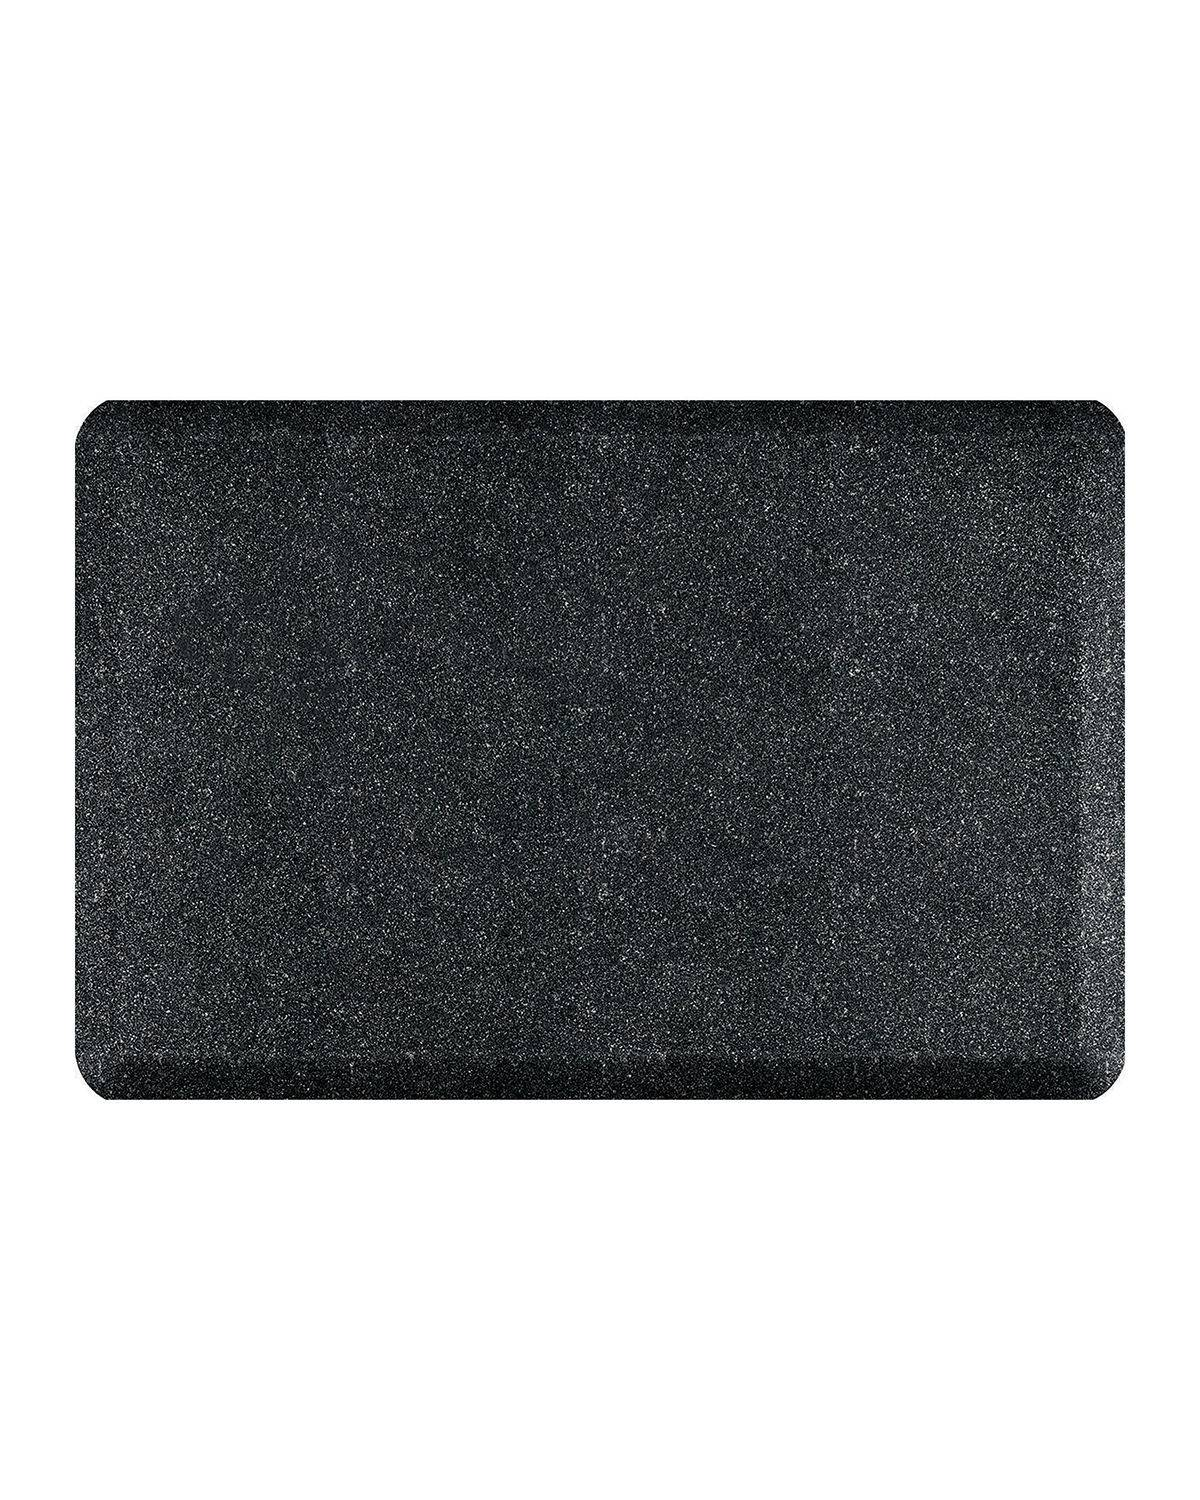 WellnessMats Granite Anti-Fatigue Kitchen Mat, 3' x 2'